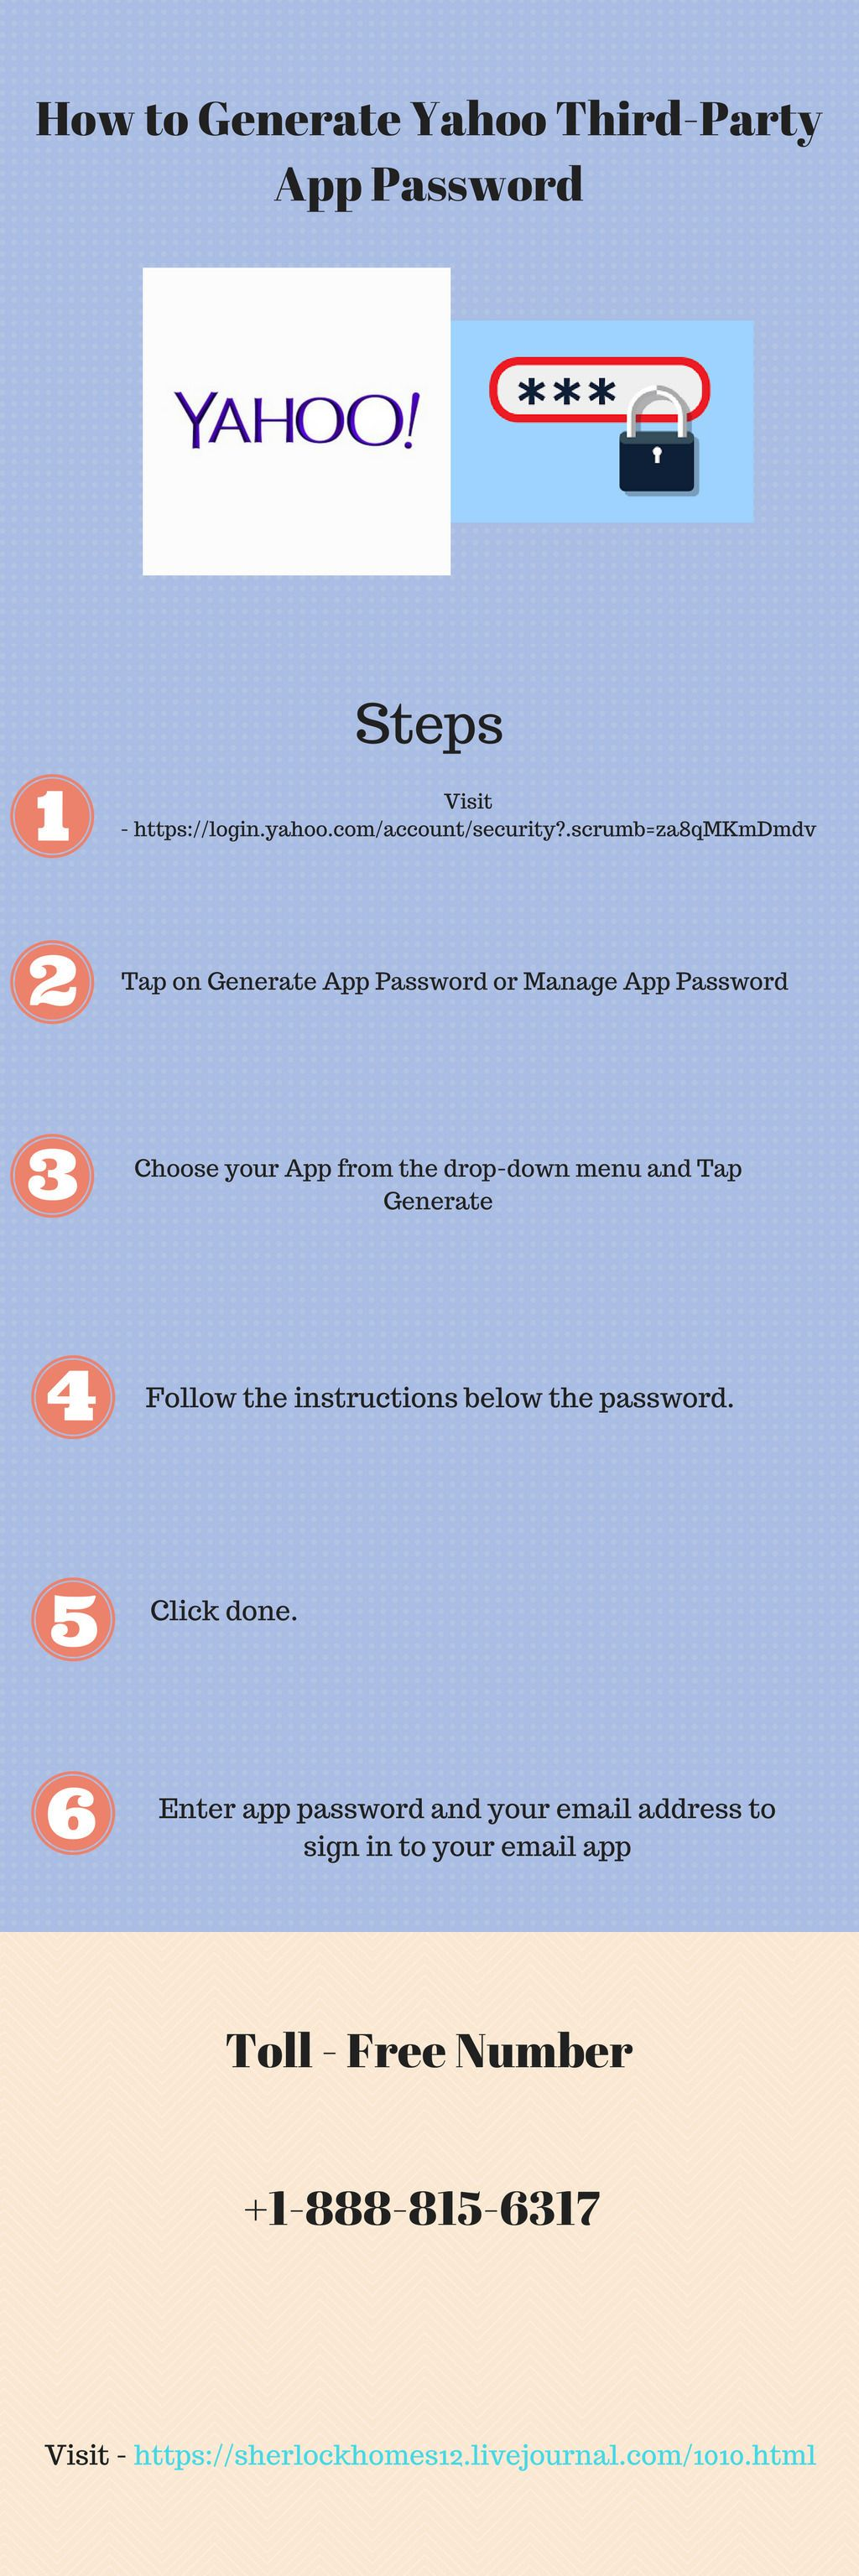 How to Generate Yahoo ThirdParty App Password App